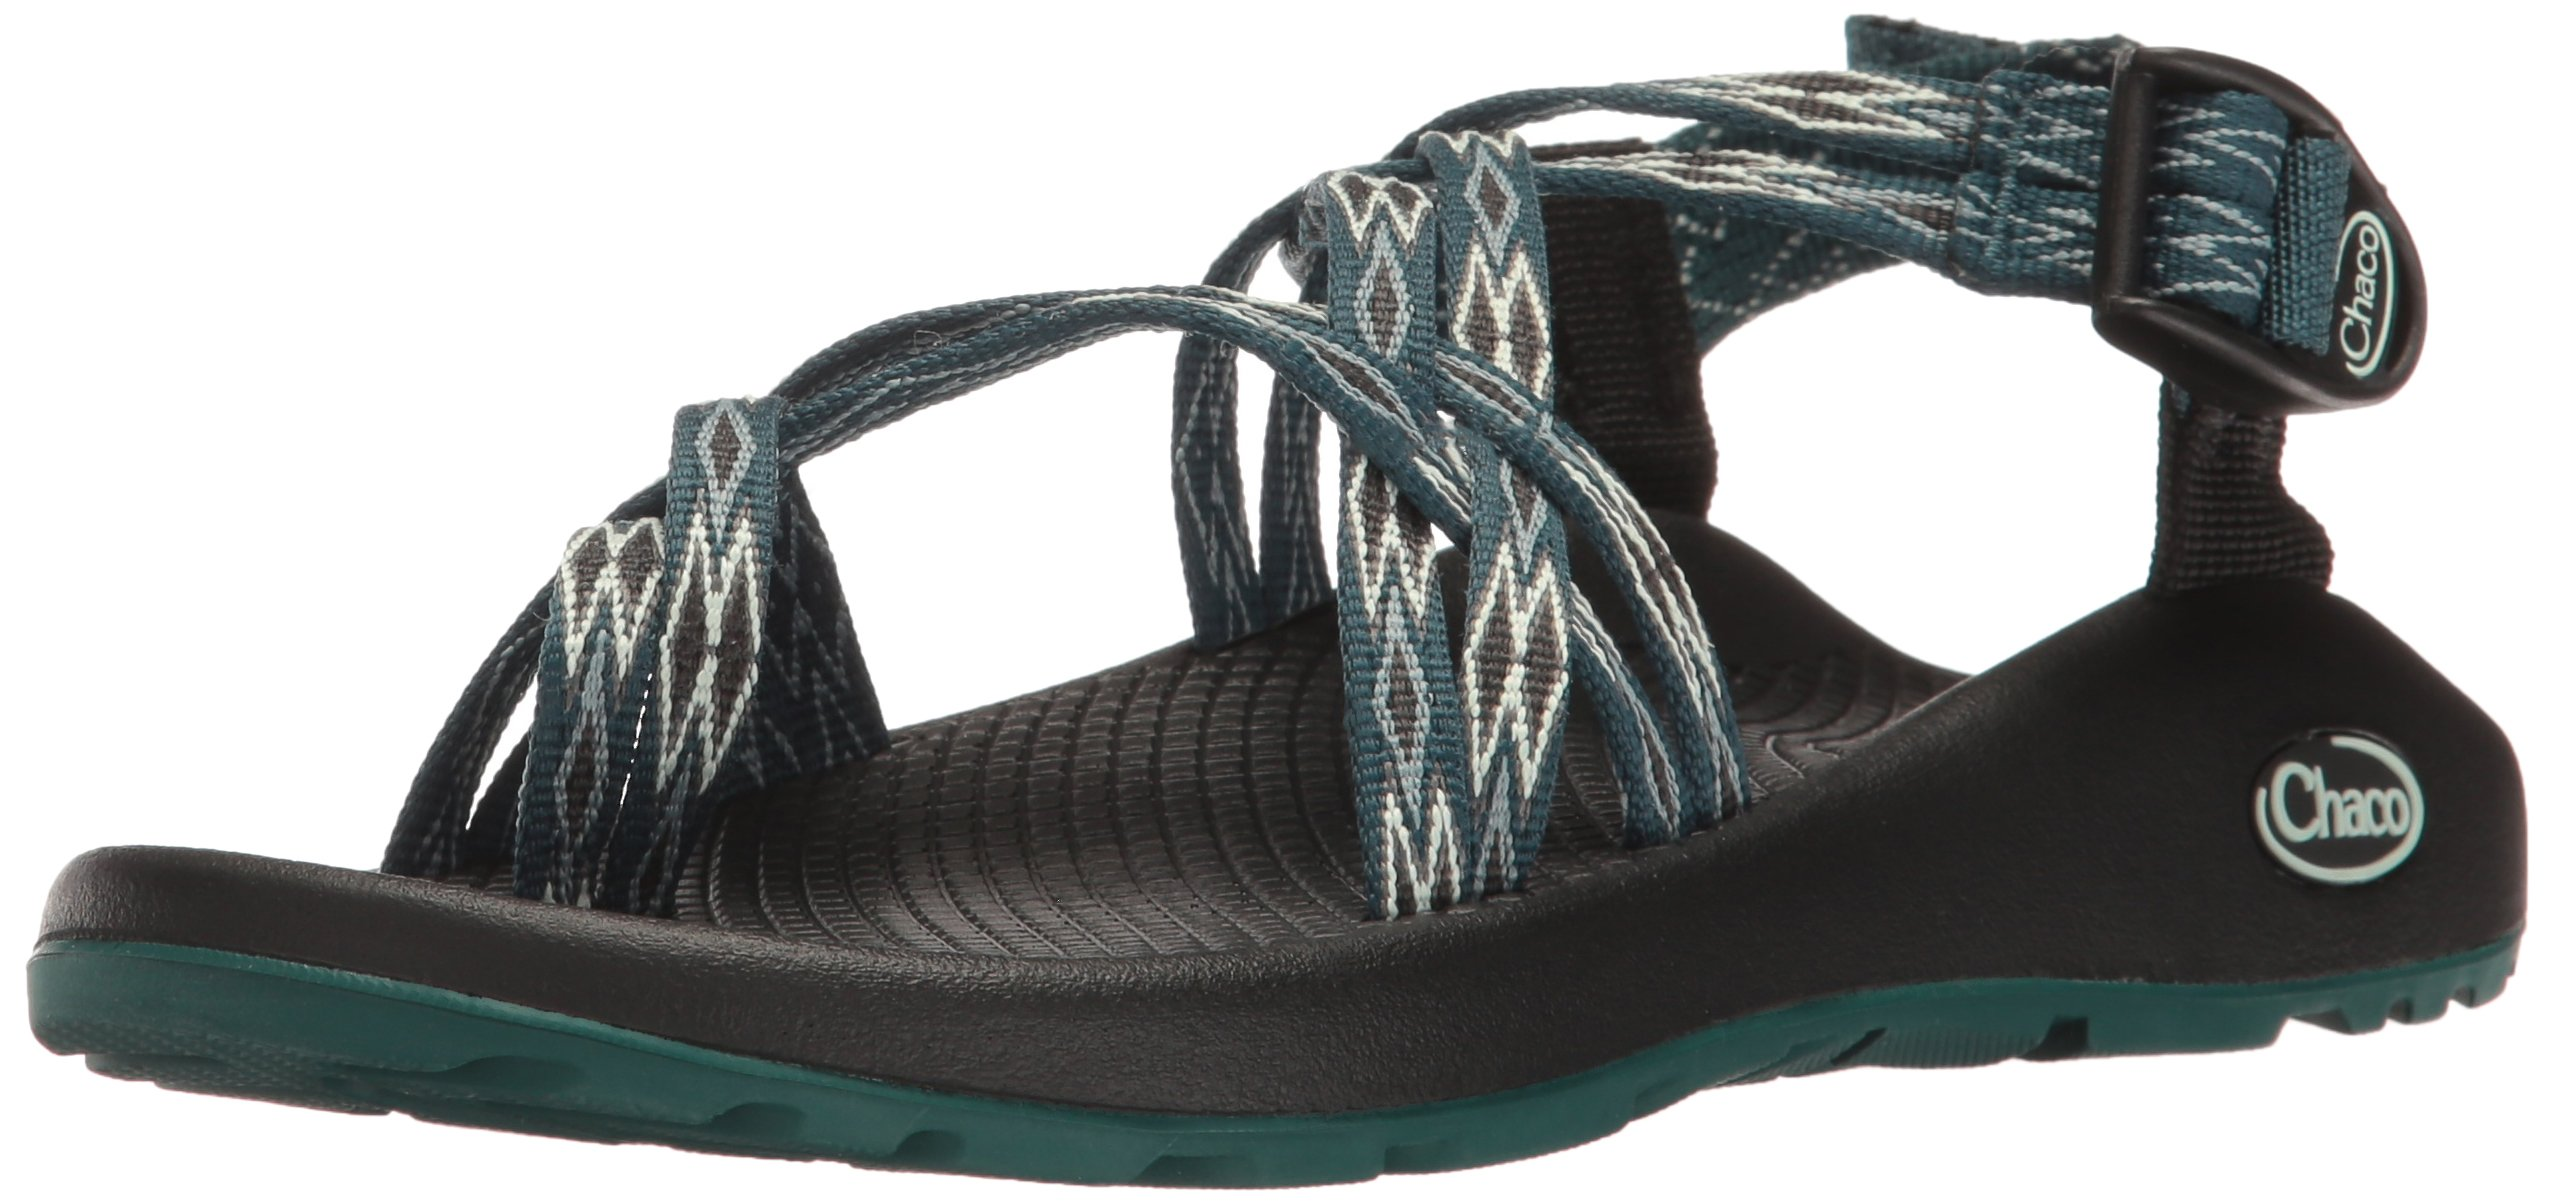 Chaco Women's ZX2 Classic Athletic Sandal, Angular Teal, 8 M US by Chaco